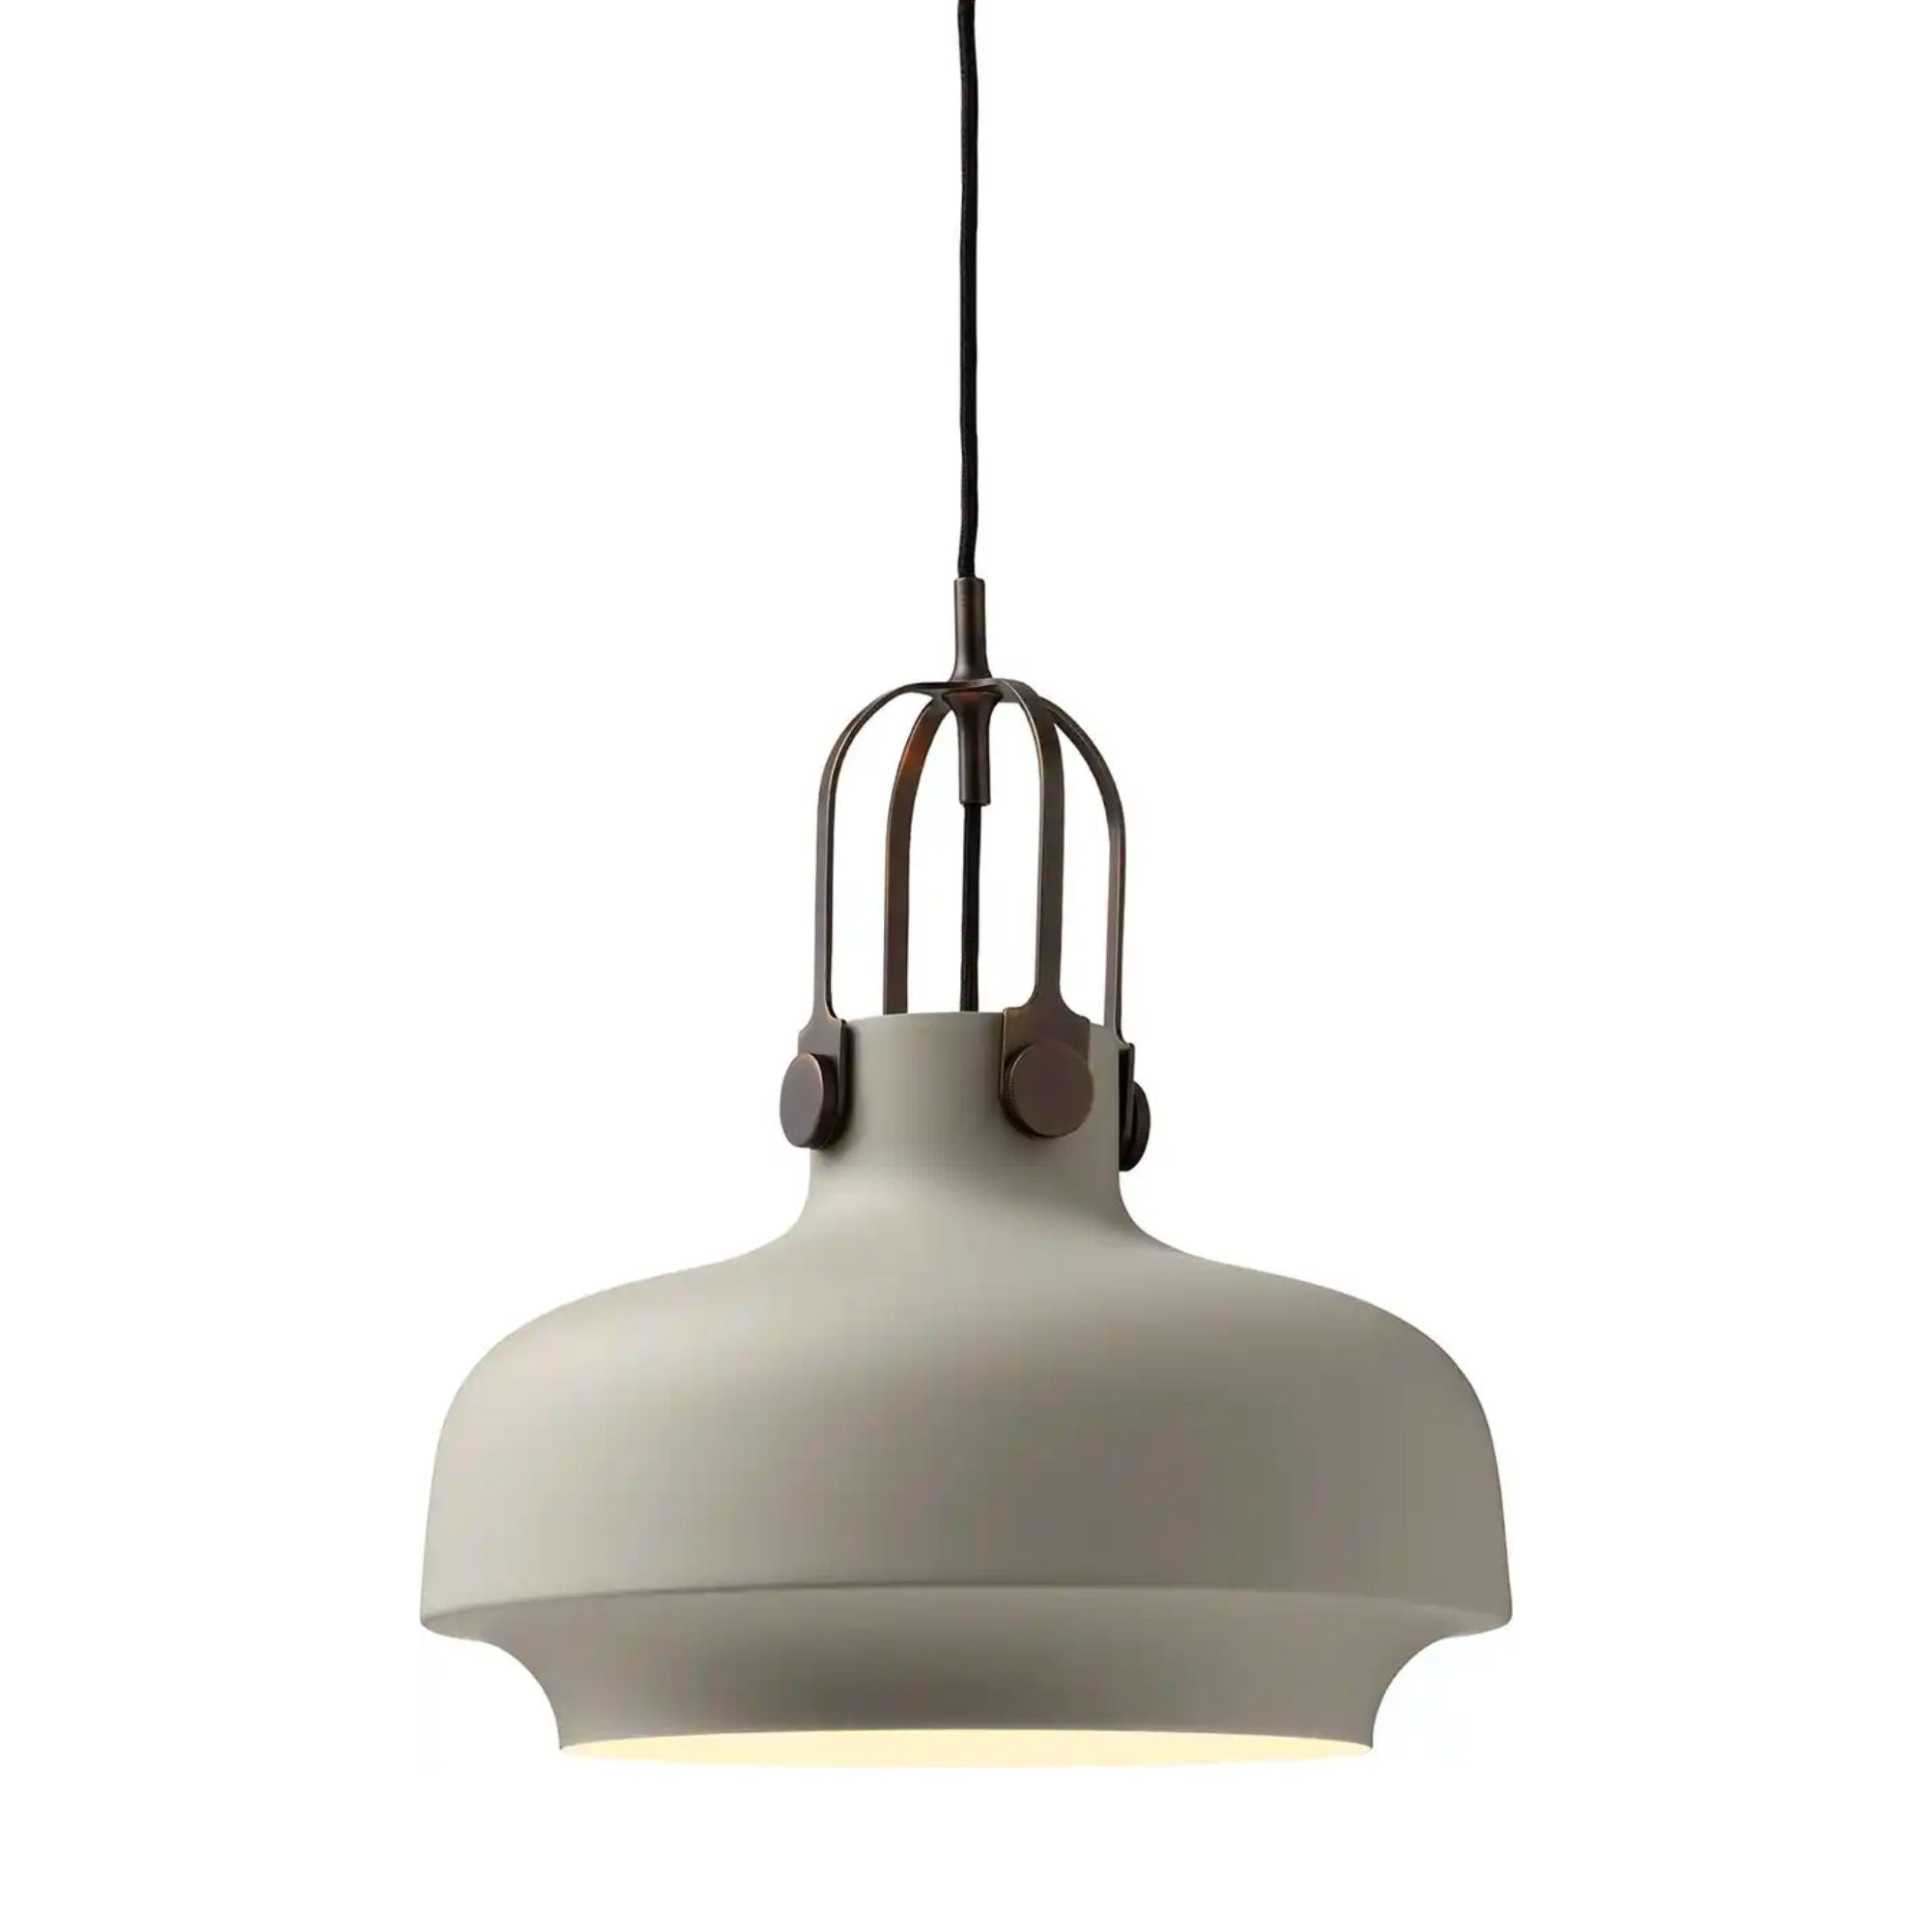 &Tradition SC7 Copenhagen pendant light, matt stone - bronzed brass suspension